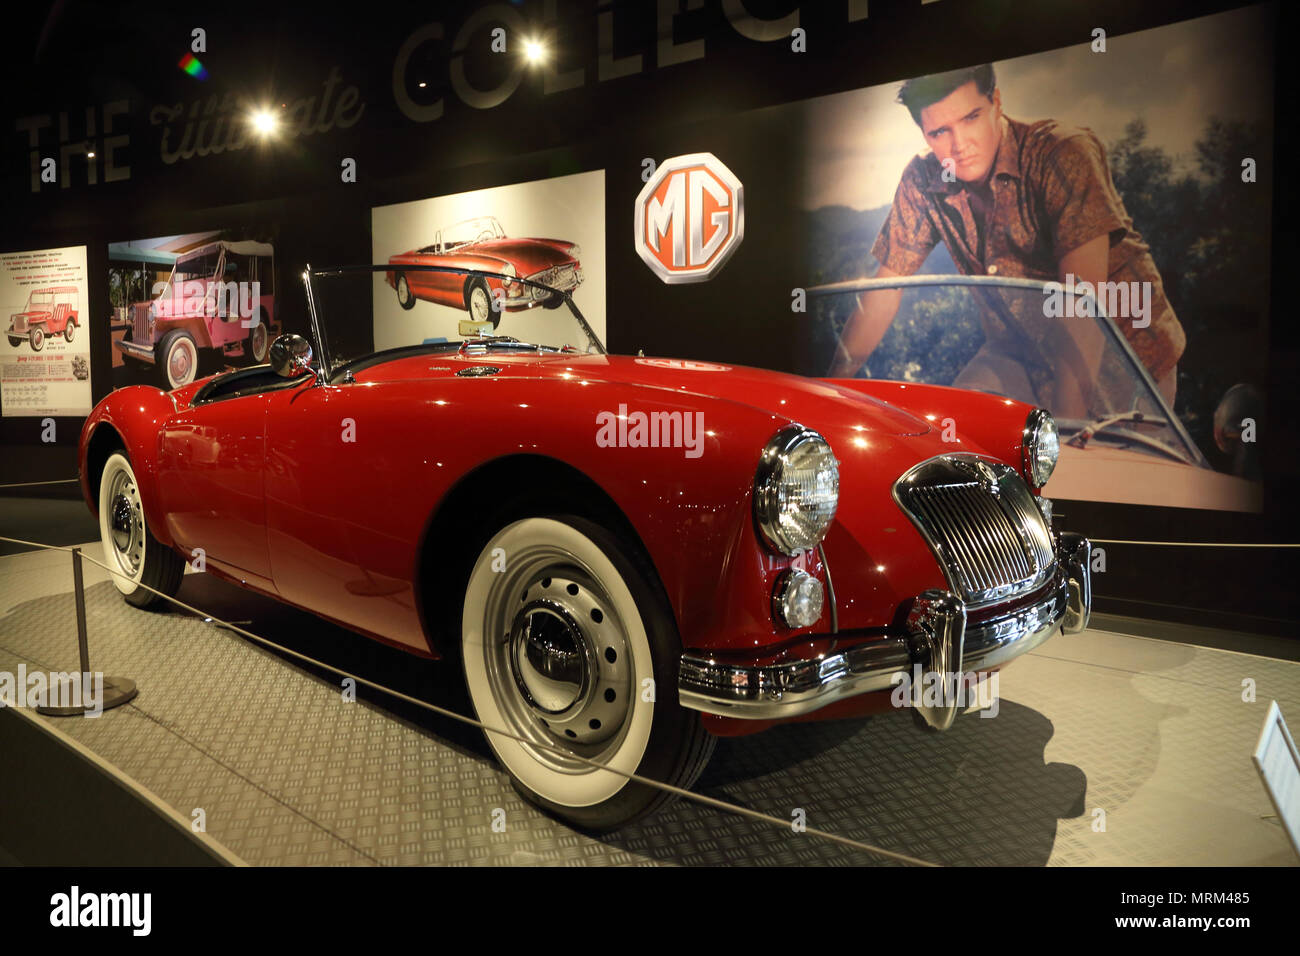 Elvis Presley's red MG sports car display in Presley Motors Automobile Museum in Graceland the home of Elvis Presley.Memphis,Tennessee.USA - Stock Image